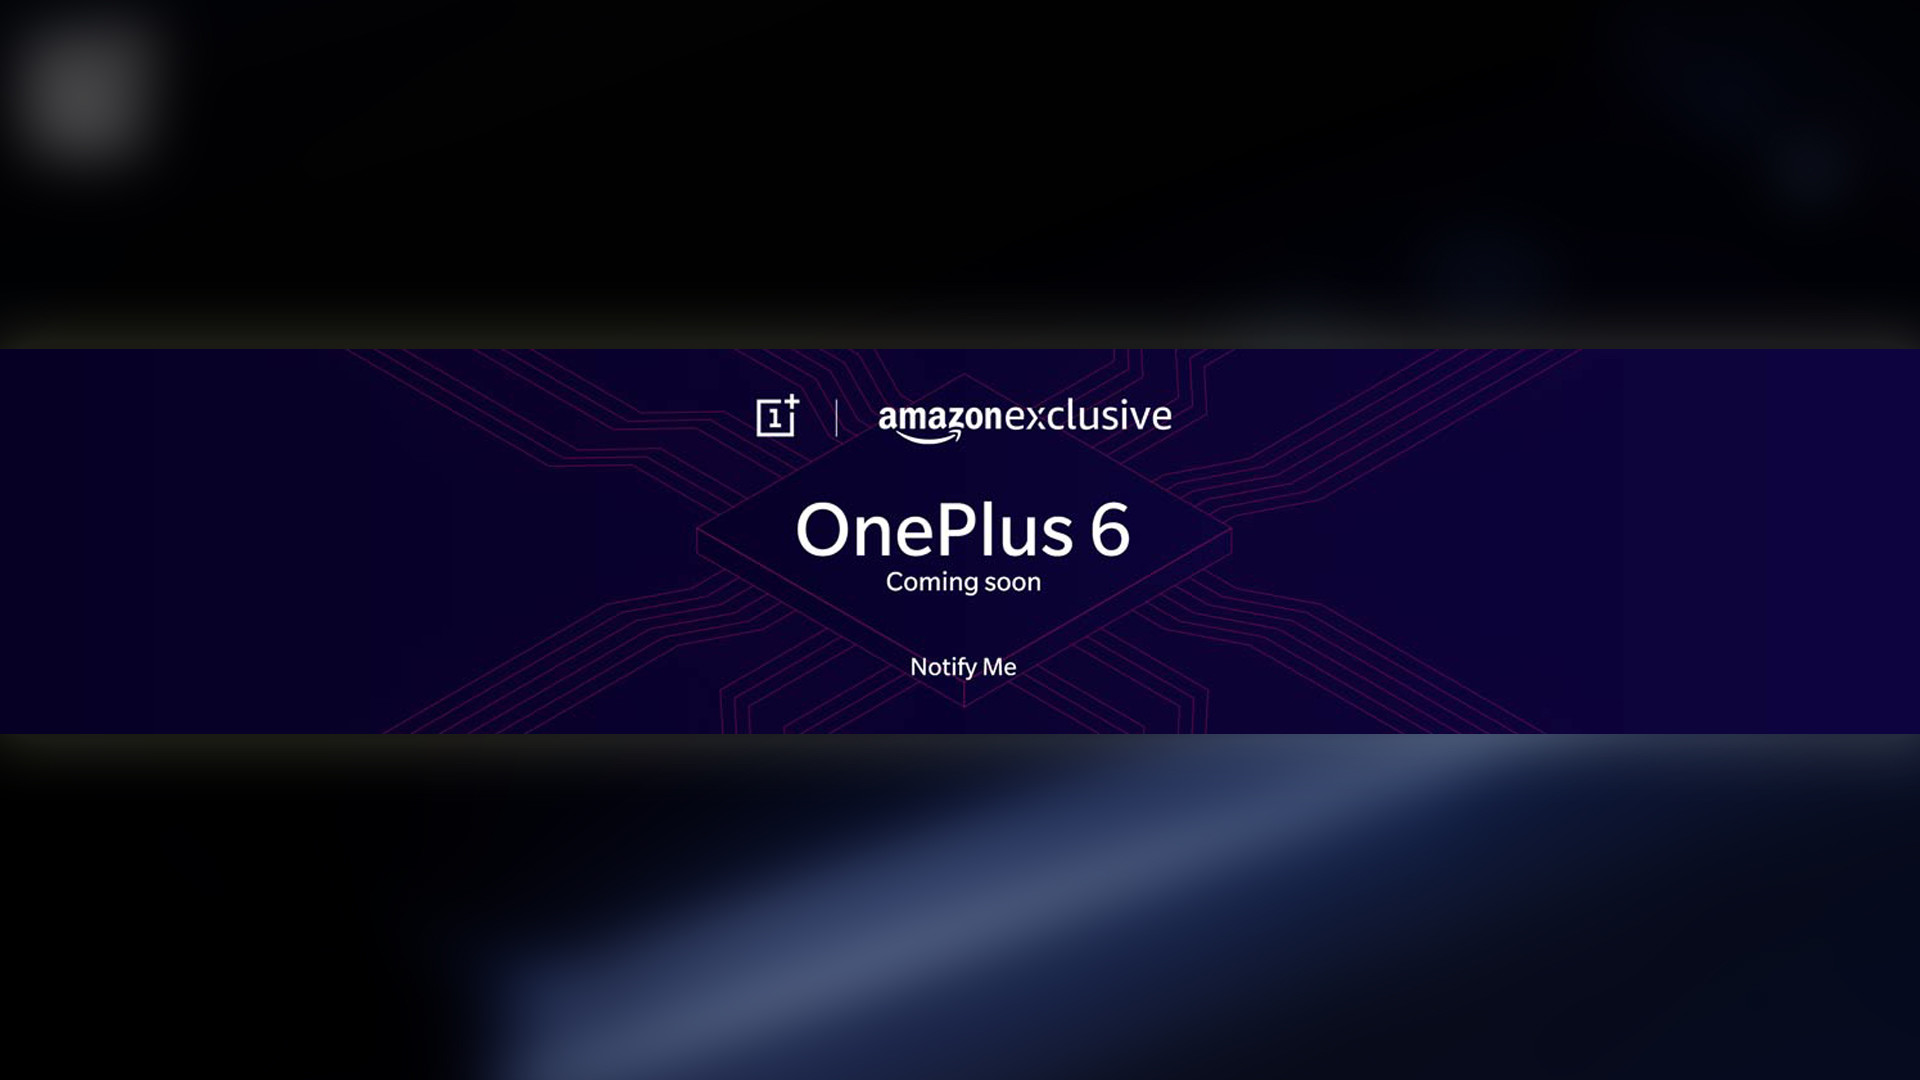 OnePlus 6 listing now live on Amazon India, offers a 'Notify Me' option